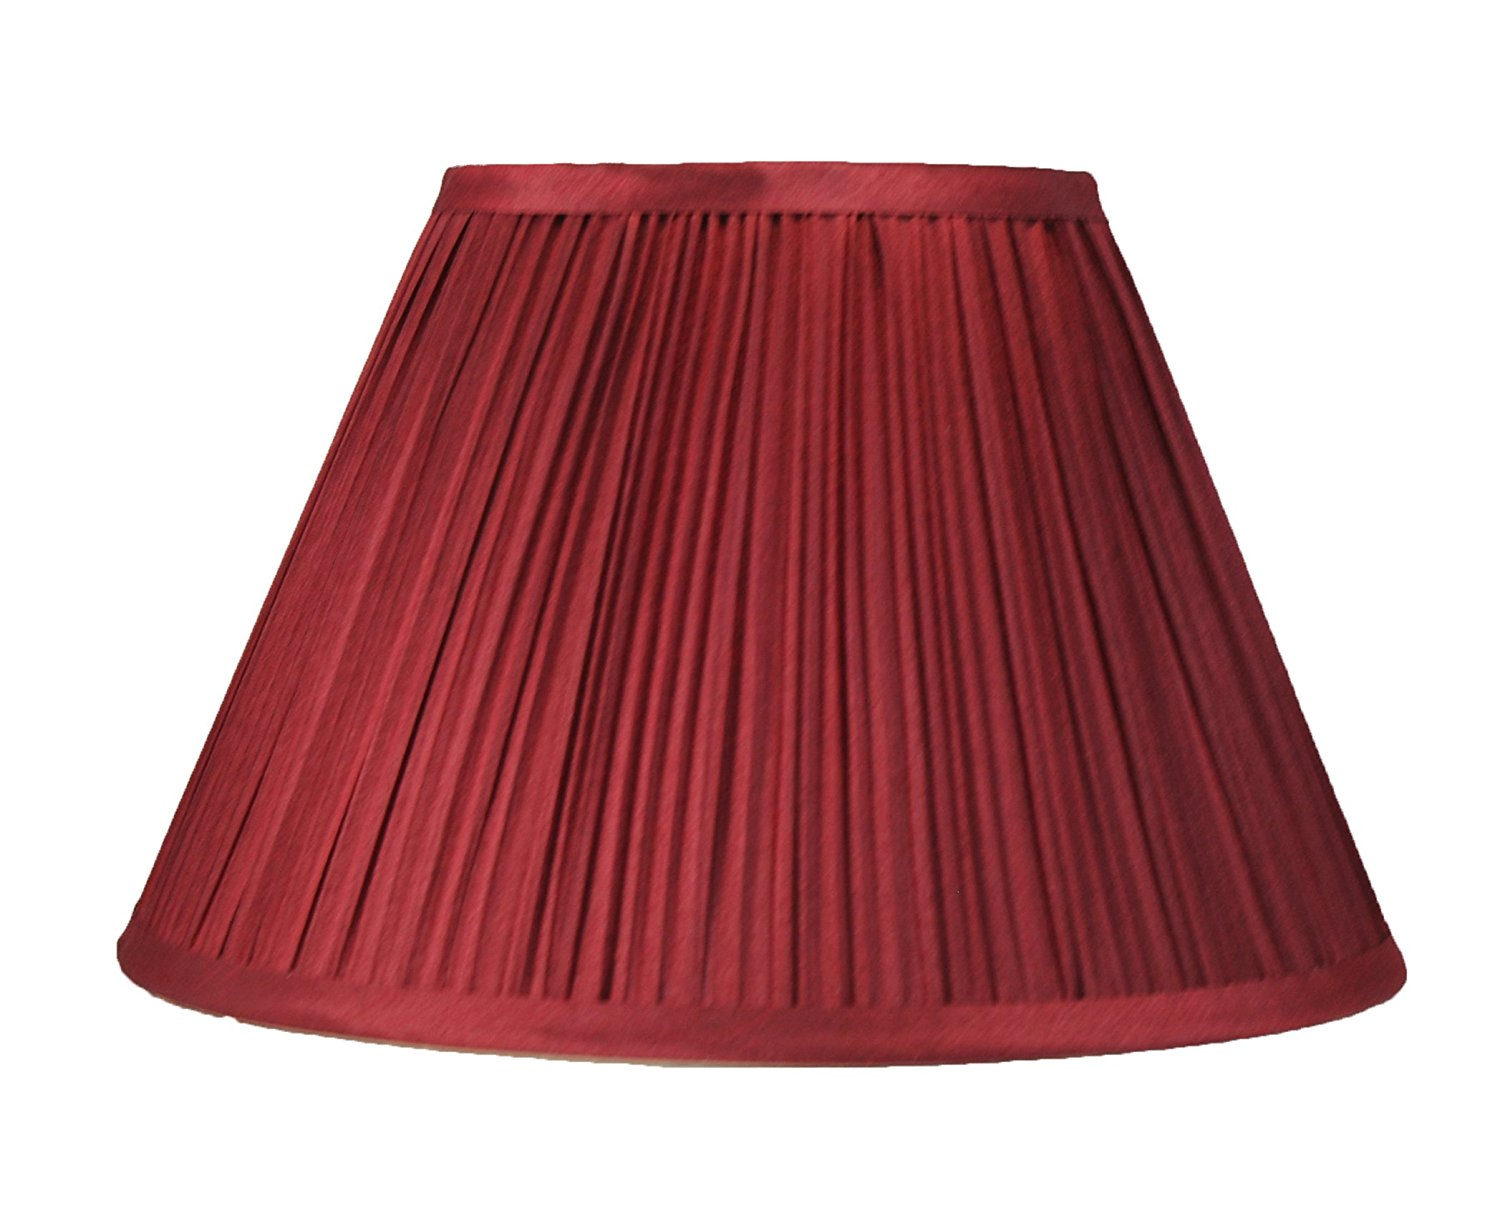 Mushroom pleated softback 16 inch faux silk lamp shade 5 colors mushroom pleated softback 16 inch faux silk lamp shade 5 colors aloadofball Gallery